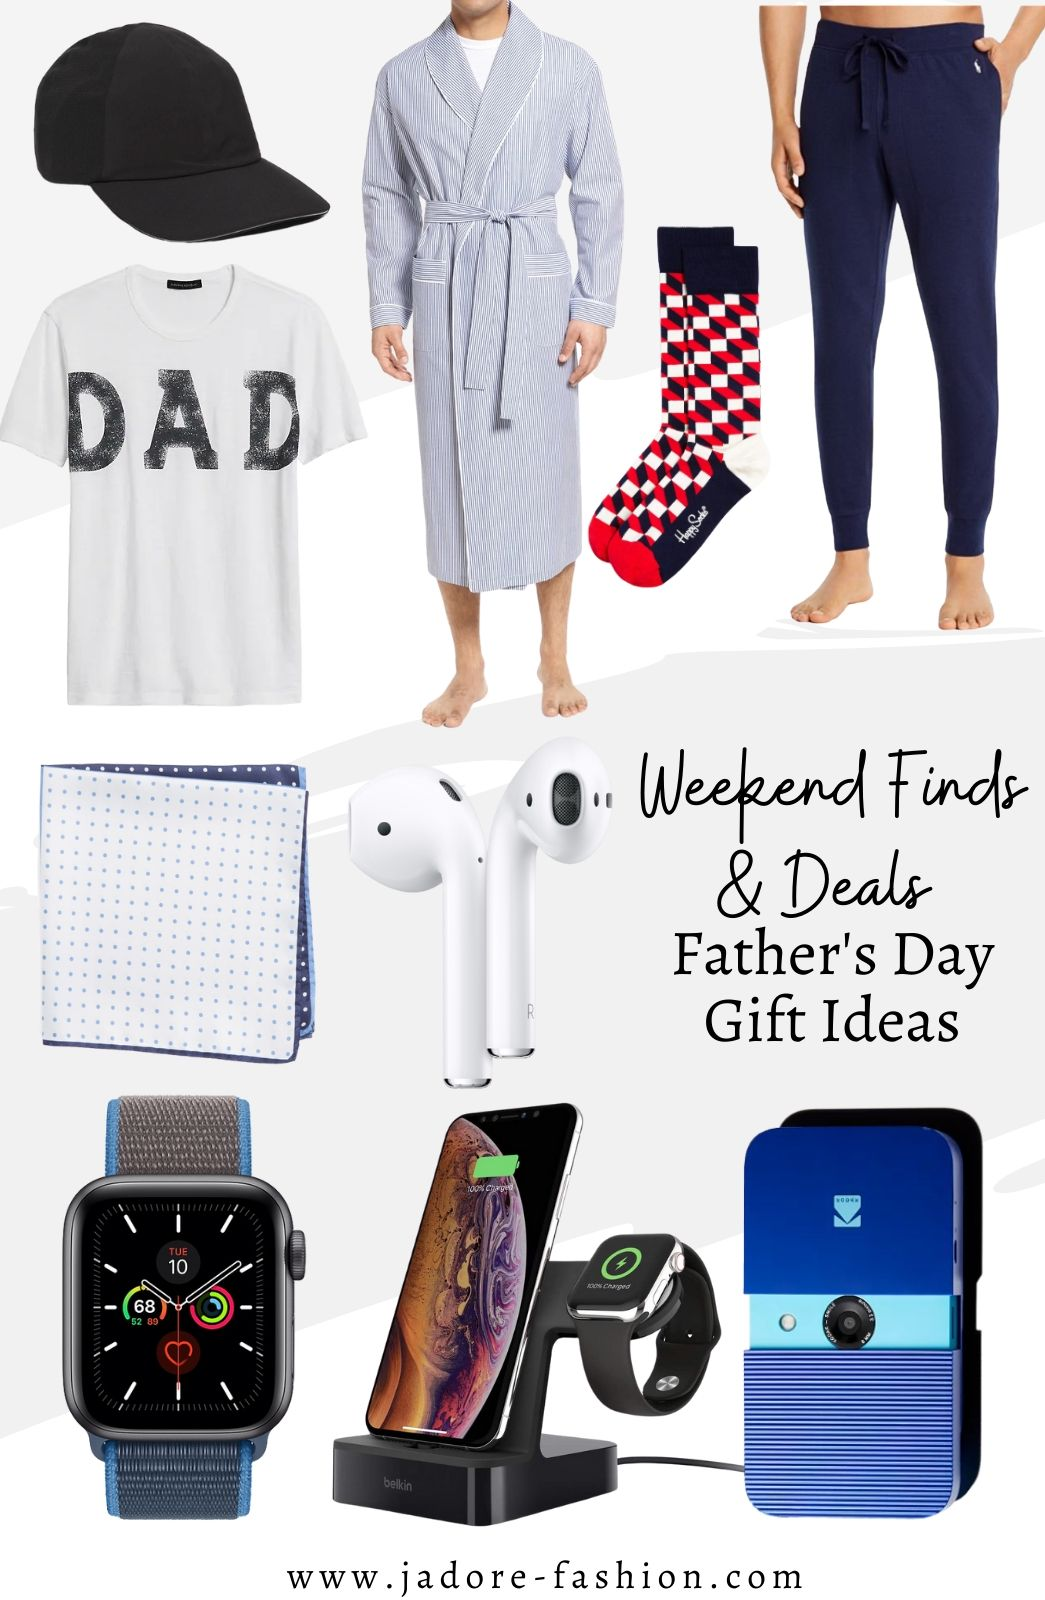 stella-adewunmi-of-jadore-fashion-blog-shares-fathers-day-gifts-you-need-now